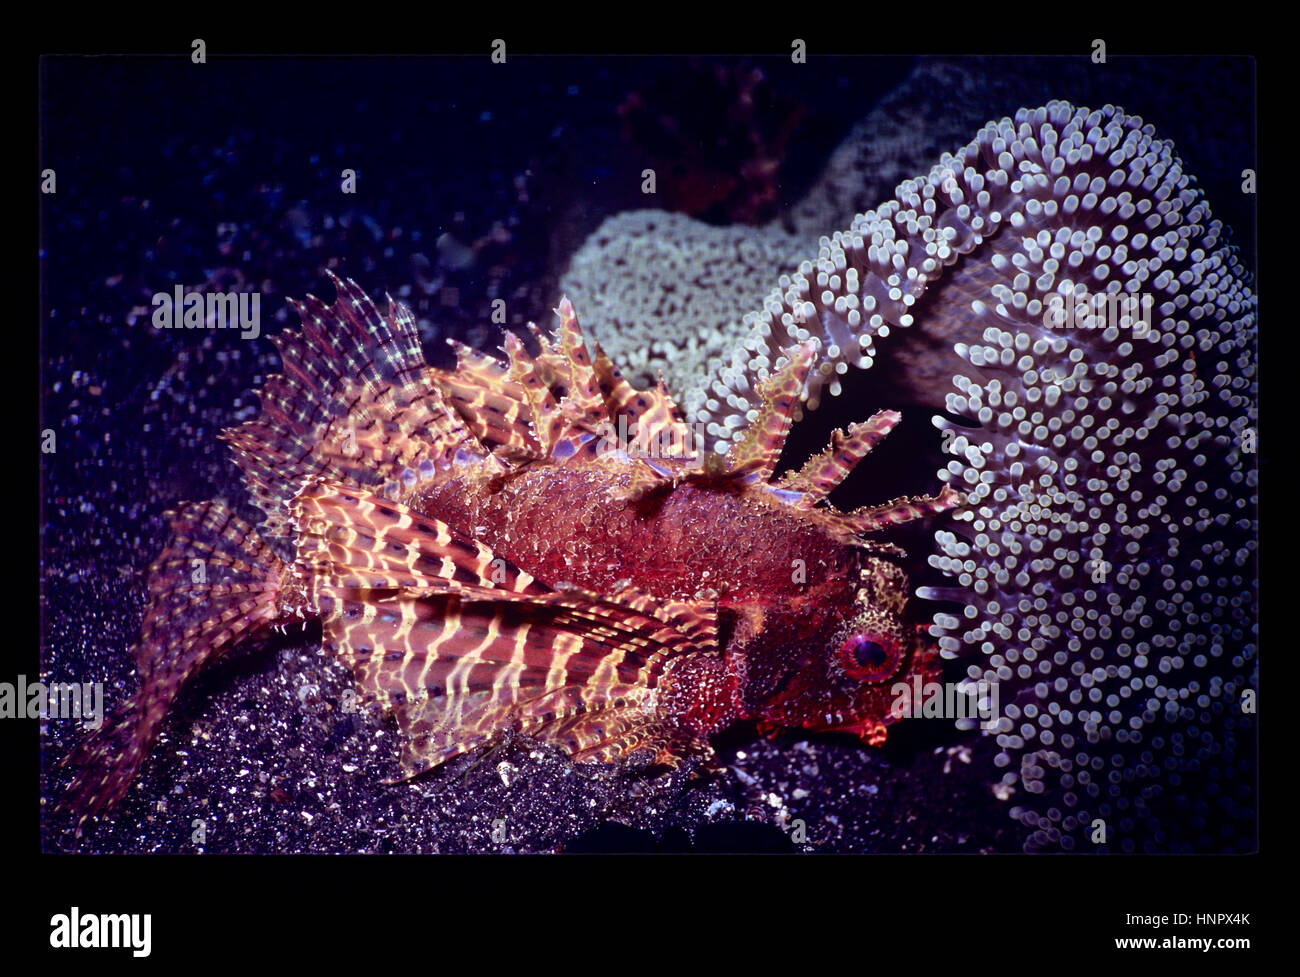 A dwarf lionfish (Dendrochirus biocellatus: 12 cms.) with its fins folded, resting beside a carpet anemone (Stichodactyla - Stock Image